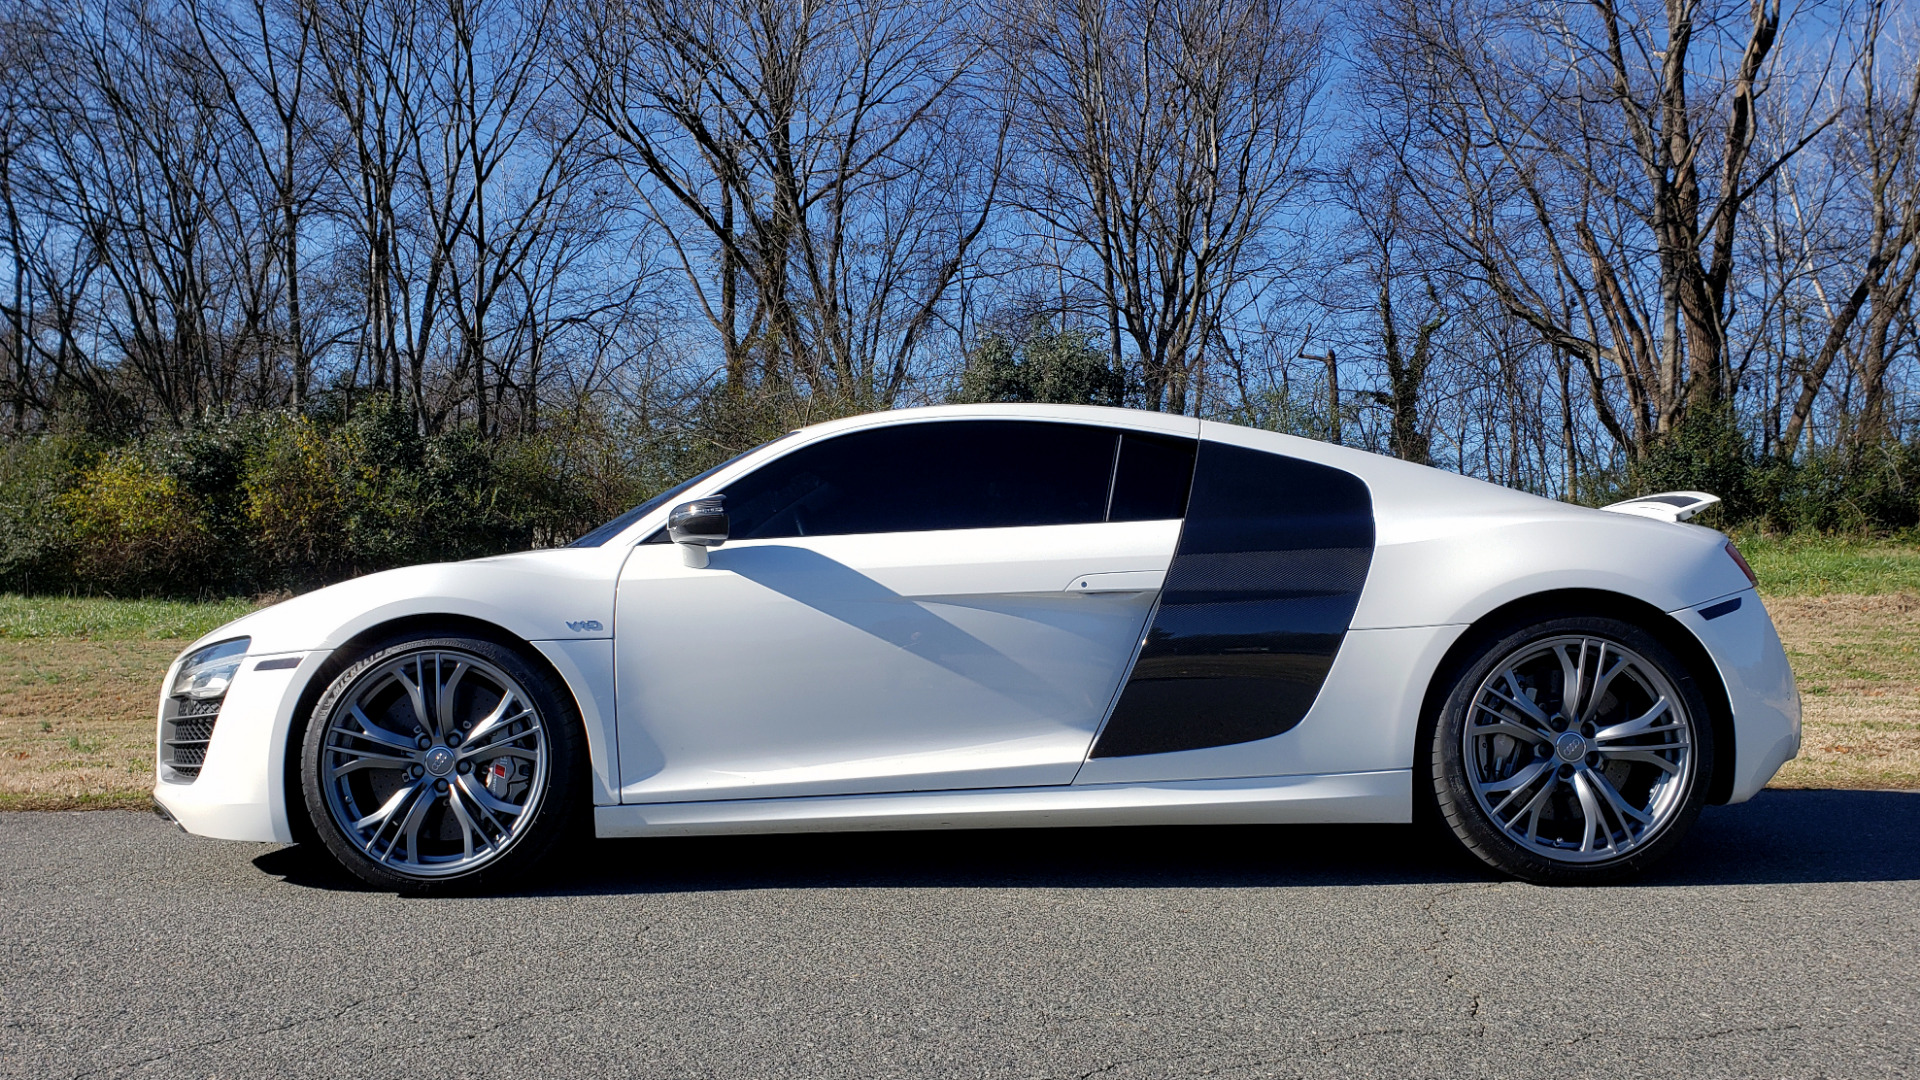 Used 2015 Audi R8 V10 PLUS / S-TRONIC / B&O SOUND / SPORT EXH / REARVIEW for sale Sold at Formula Imports in Charlotte NC 28227 9